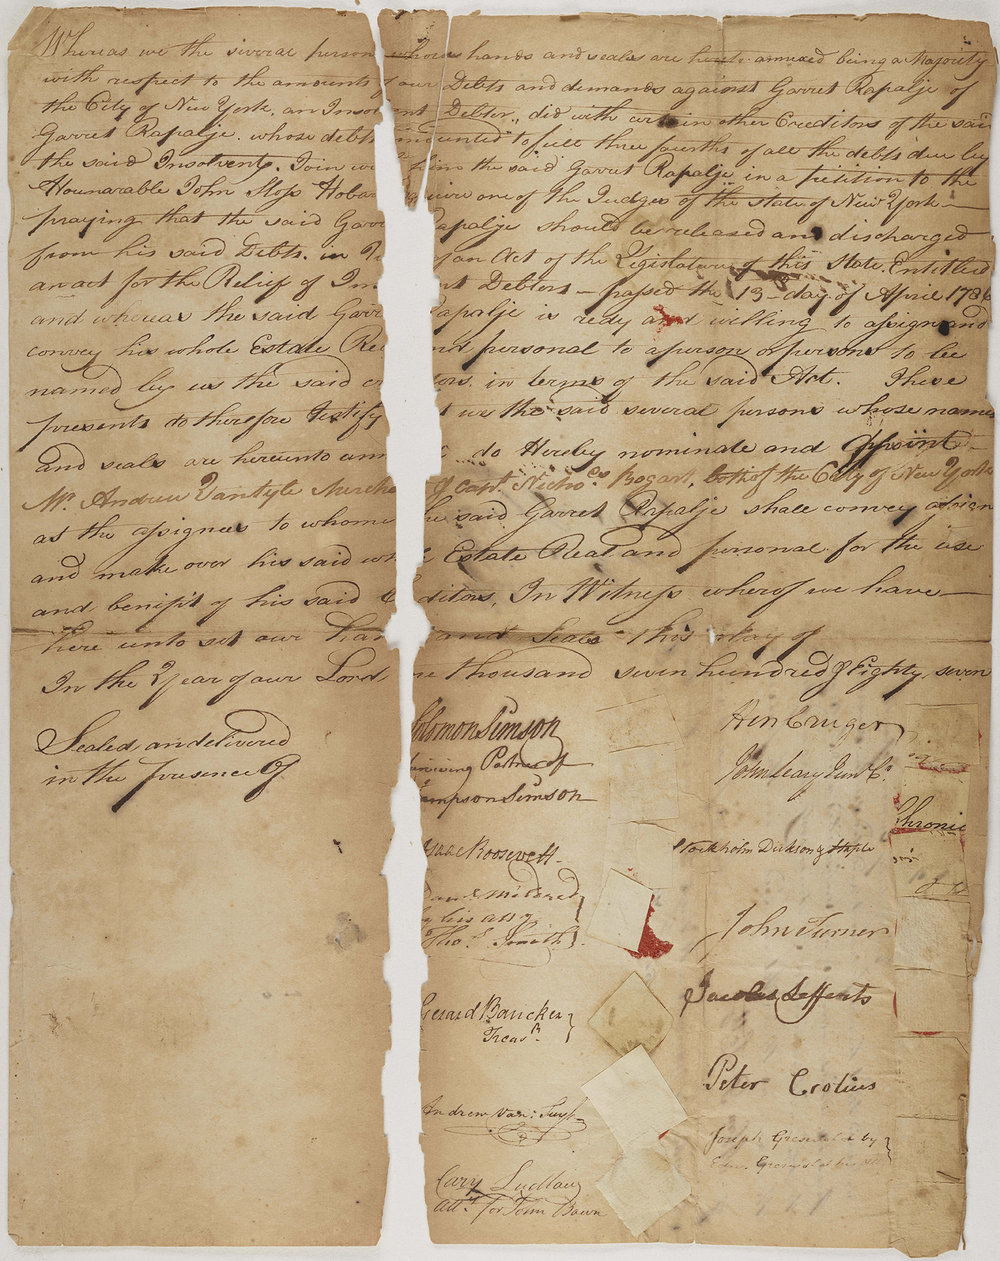 Appointment of assignees to the estate of Garret Rapalje, 1787. The assignees are Andrew Van Tuyle and Nicholas Bogart.